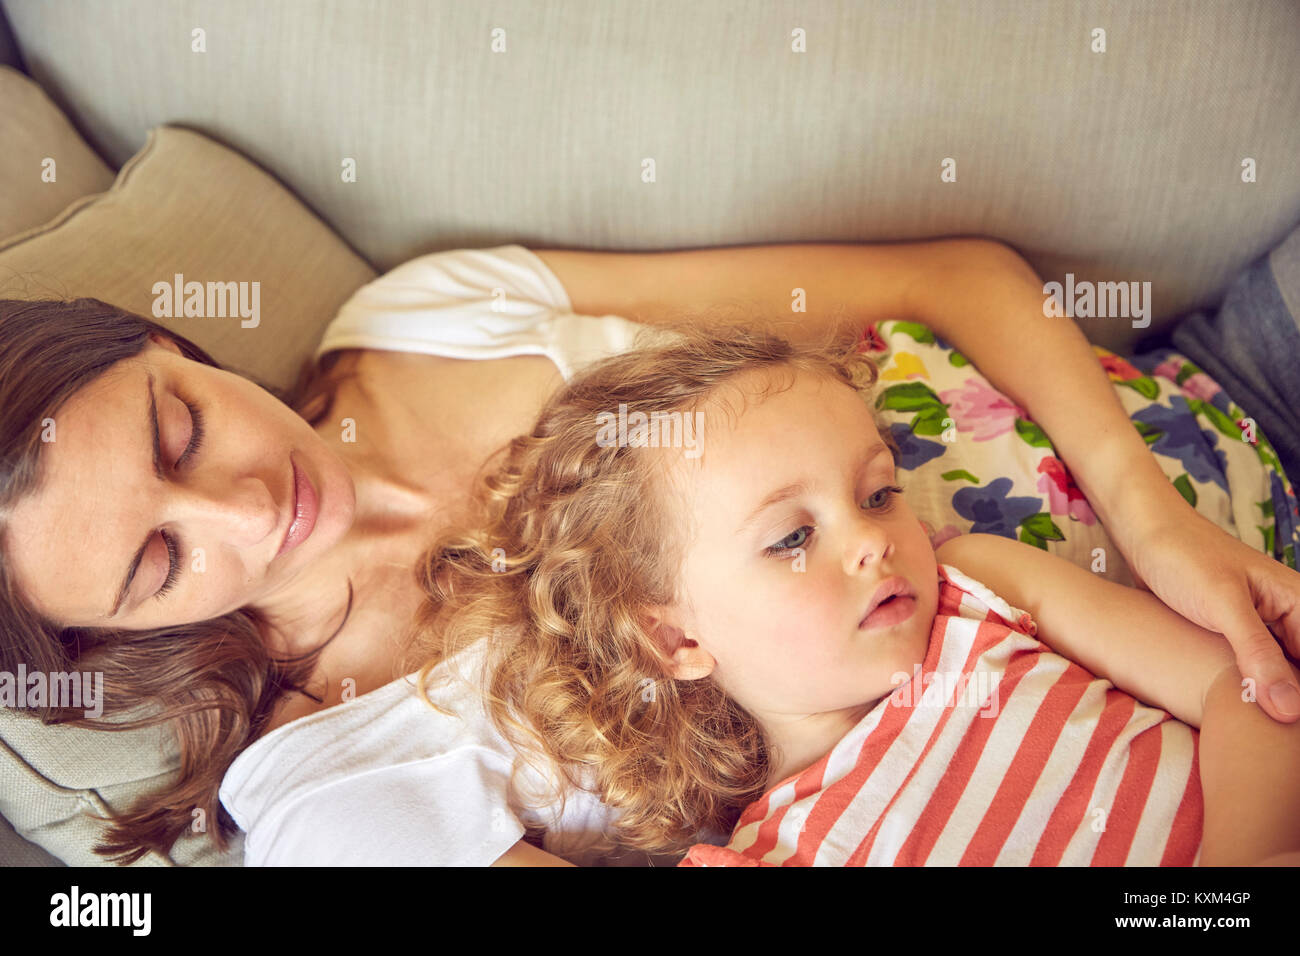 Pregnant woman and daughter reclining on sofa - Stock Image